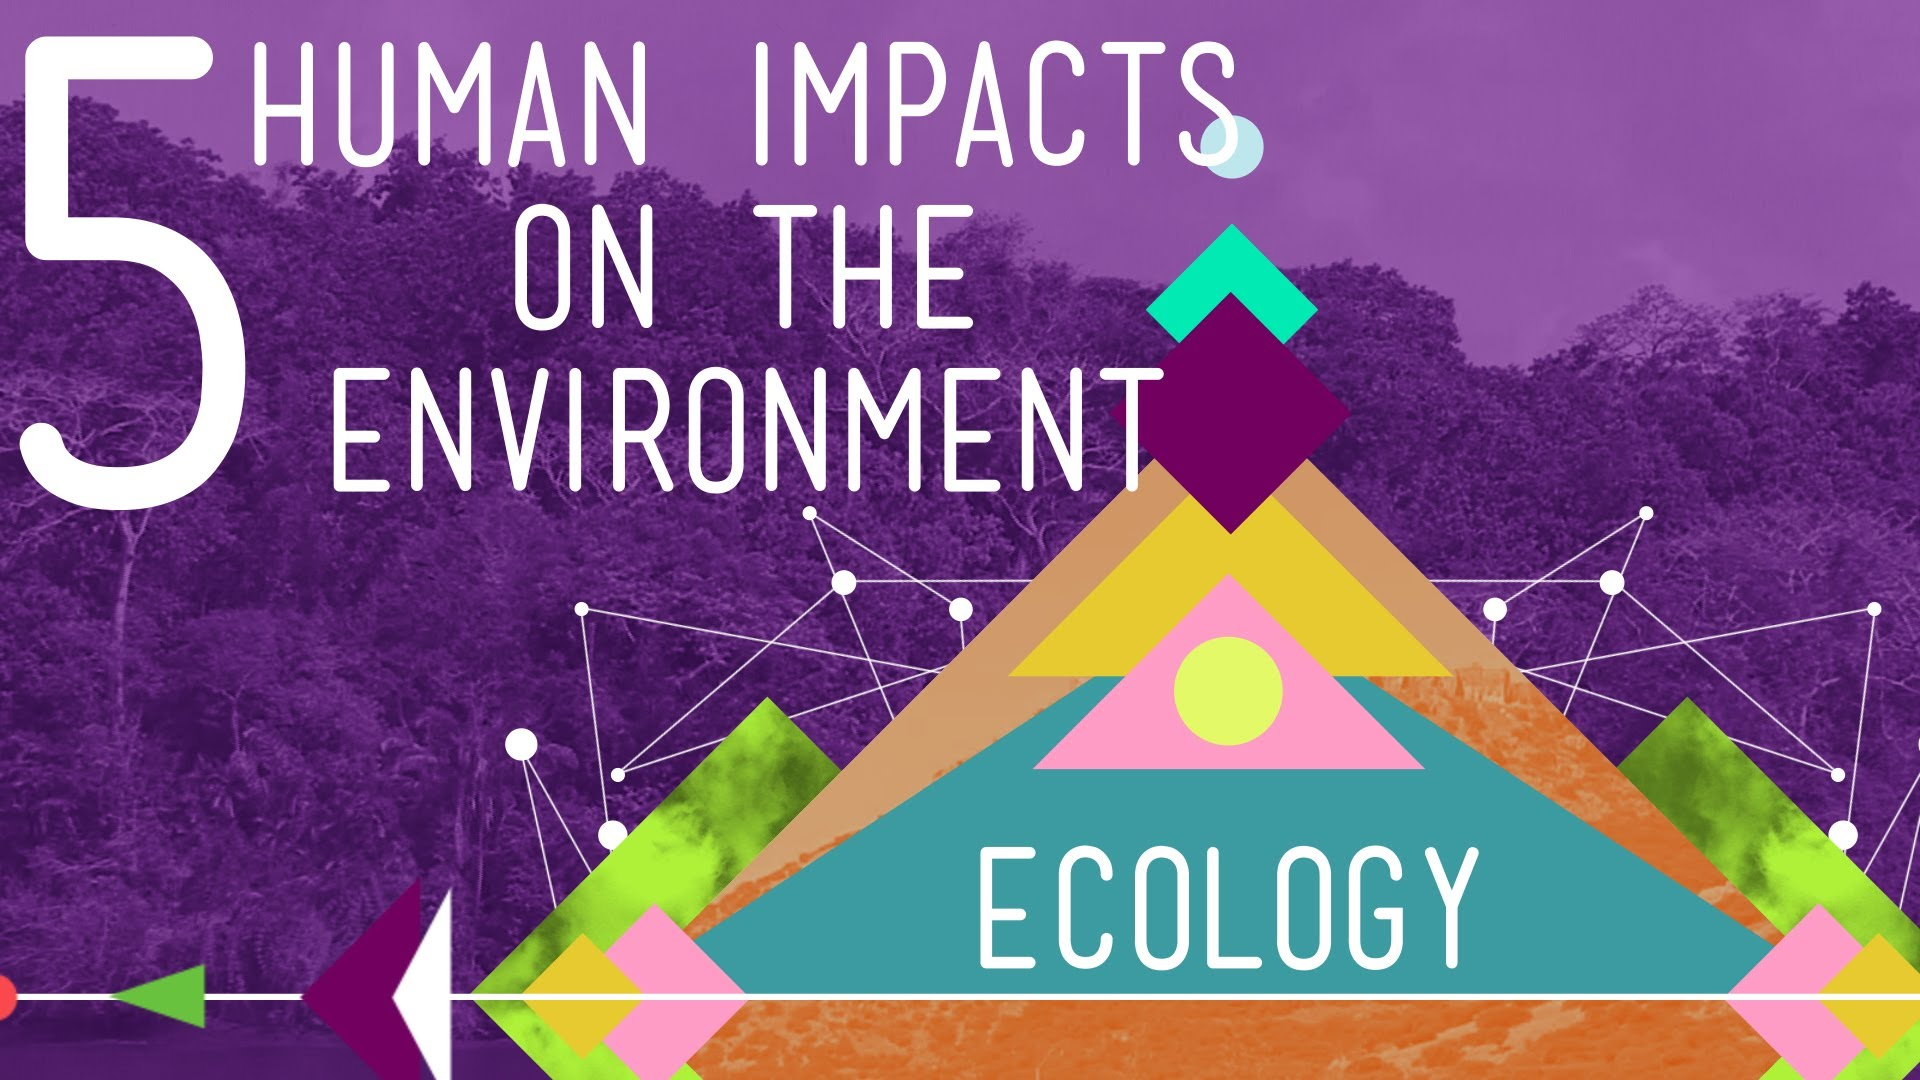 5 Human Impacts On The Environment Crash Course Ecology